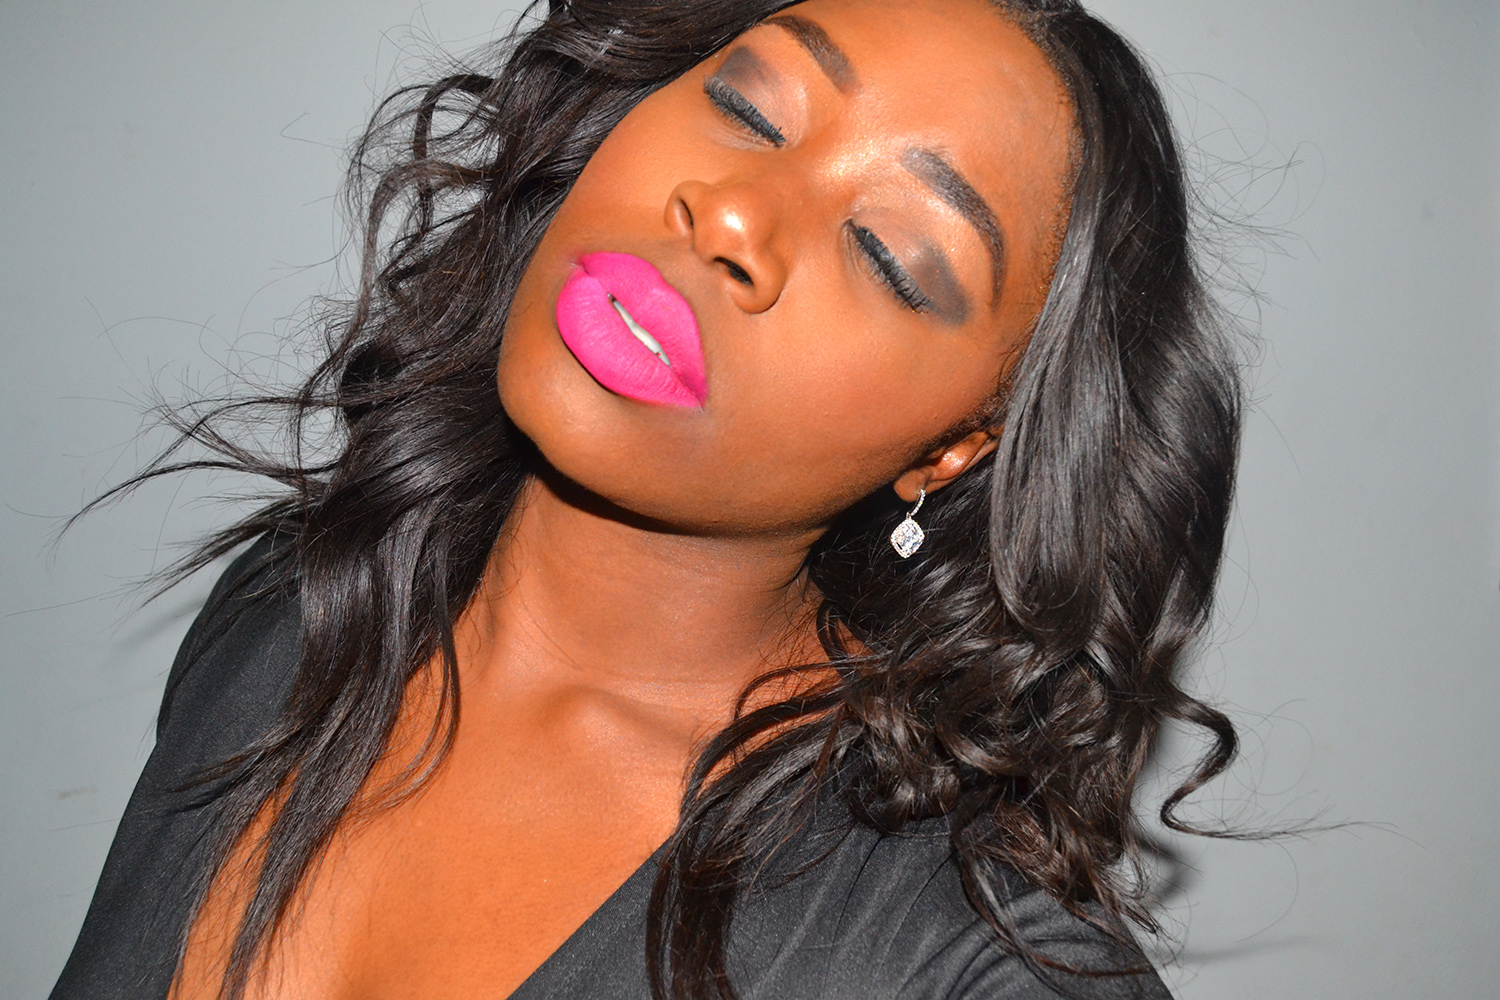 PINK MAKEUP IDEAS FROM SA BEAUTY BLOGGER FOR DARK SKIN GIRLS